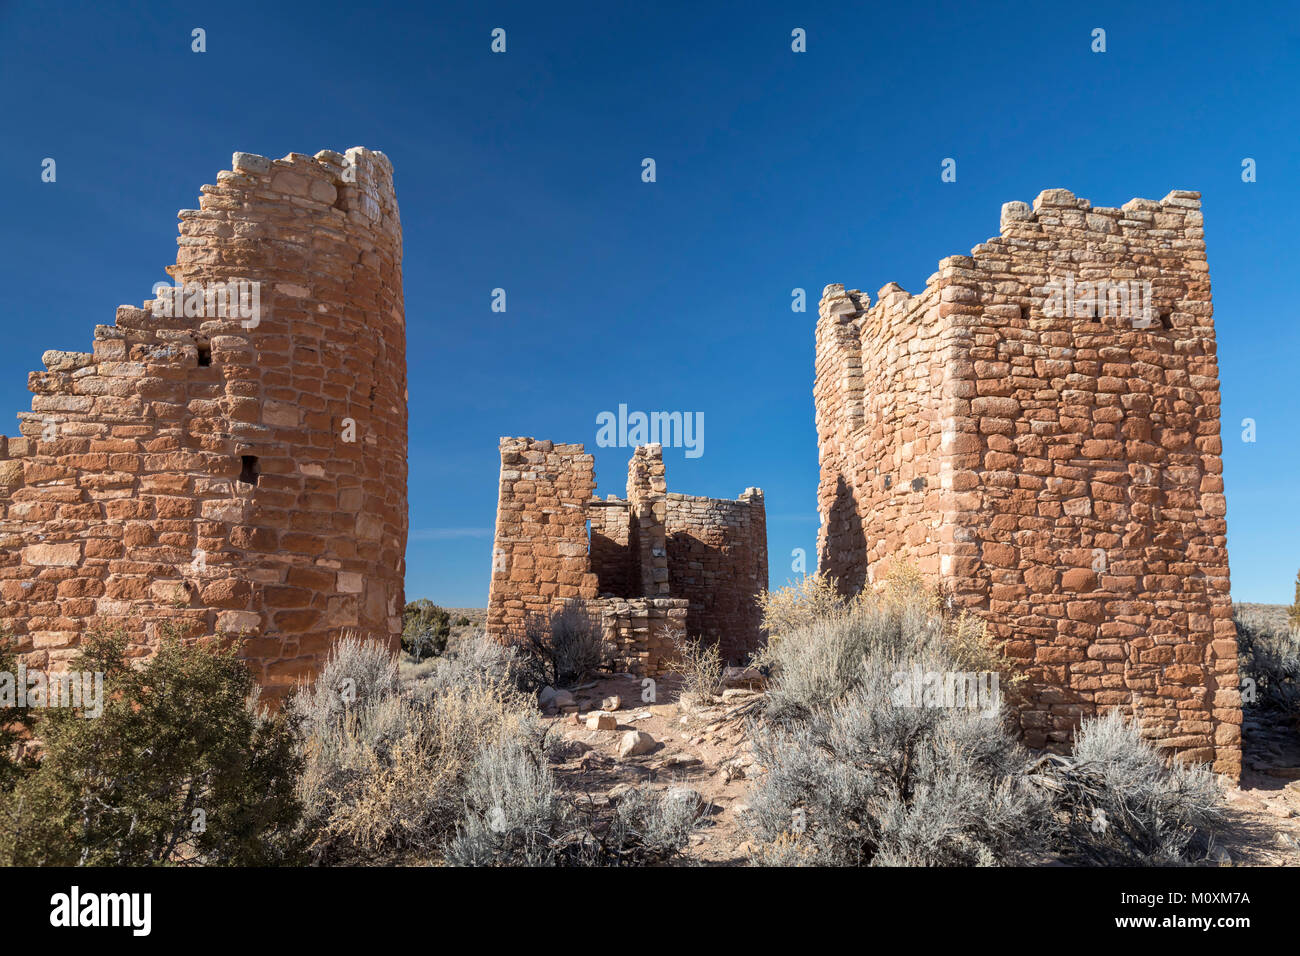 Hovenweep National Monument, Utah - Hovenweep Castle, part of the Square Tower Group of Anasazi ruins situated around - Stock Image